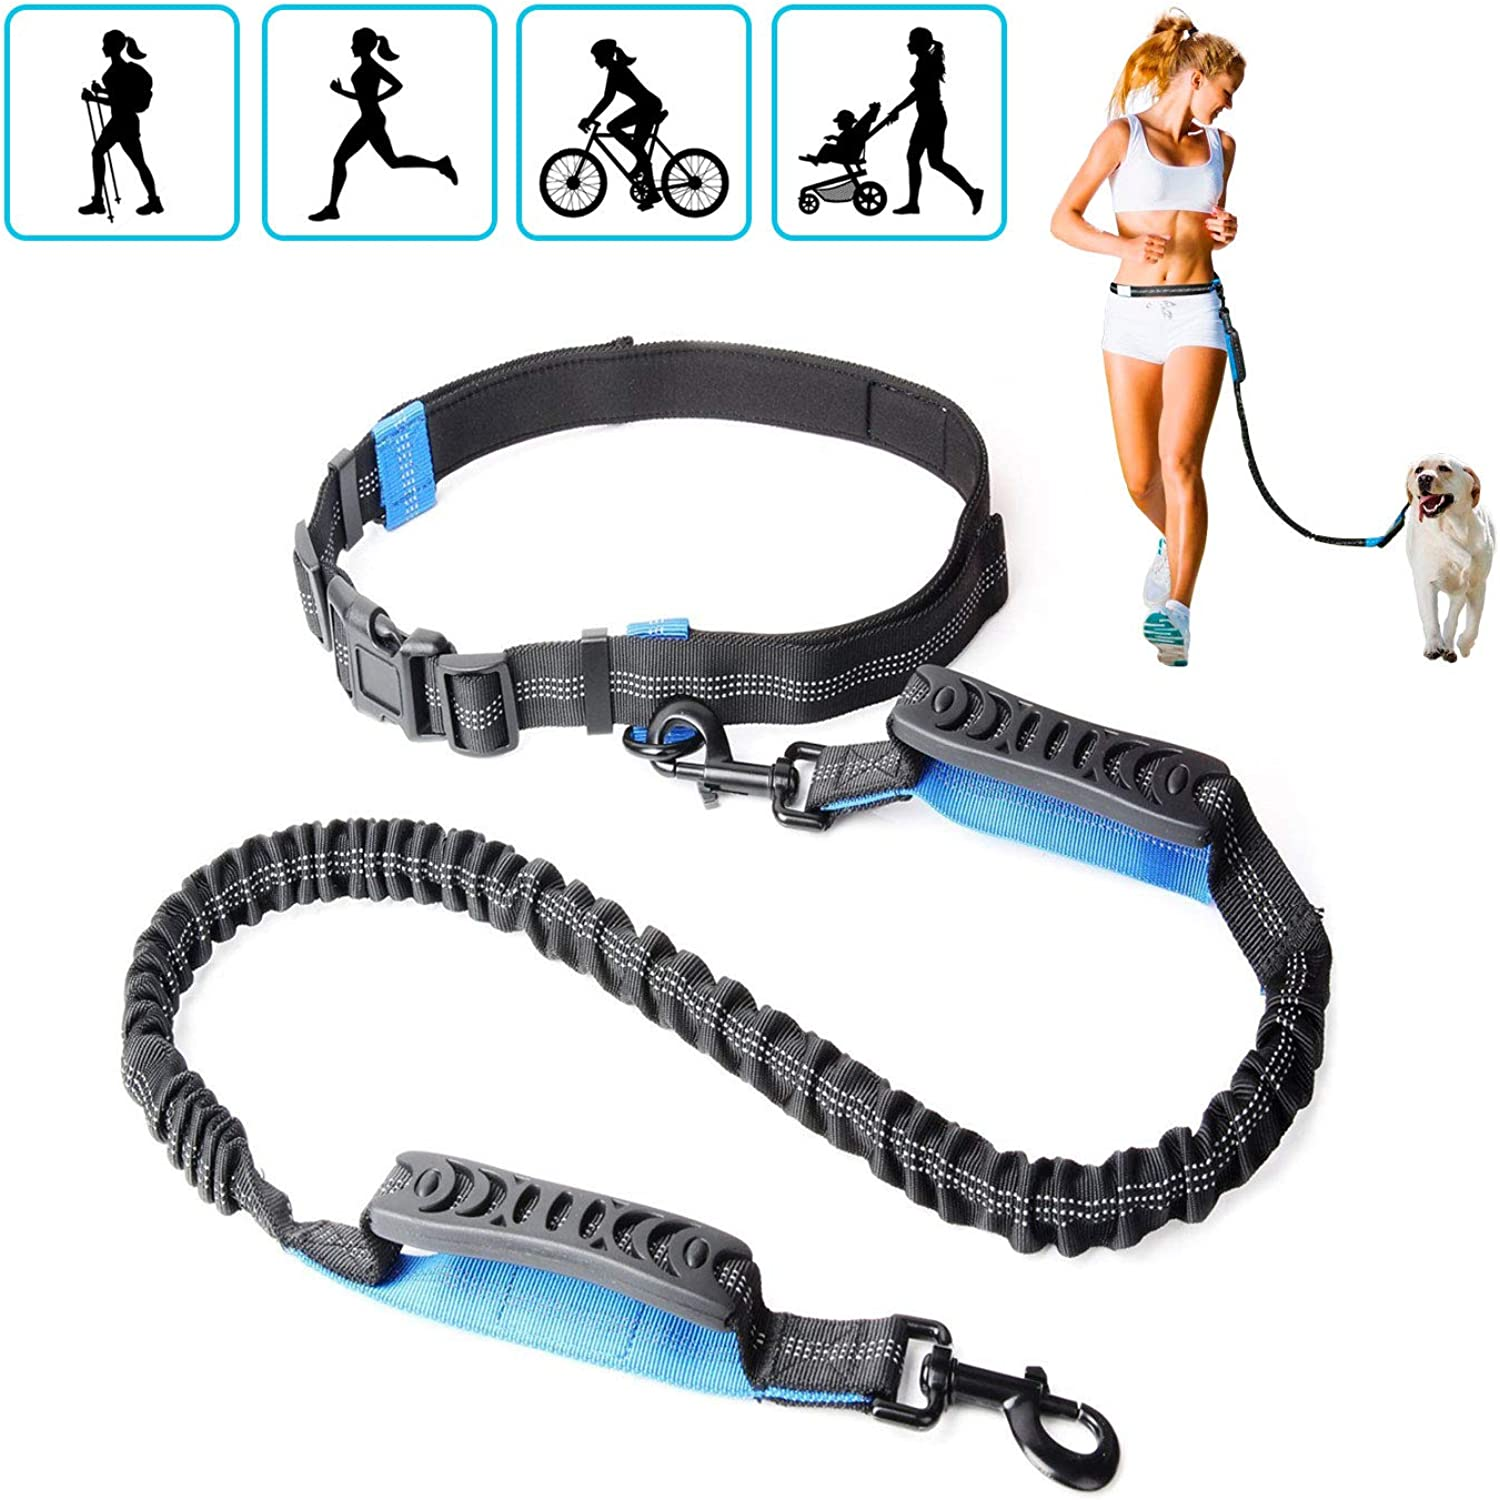 Hands Free Dog Leash   Dual Rubber Handles for Medium & Large Dogs   Adjustable Waist Belt with Comfortable Pad   Shock Absorbing Extendable Bungee & Reflective Stitches for Walking, Jogging, Running